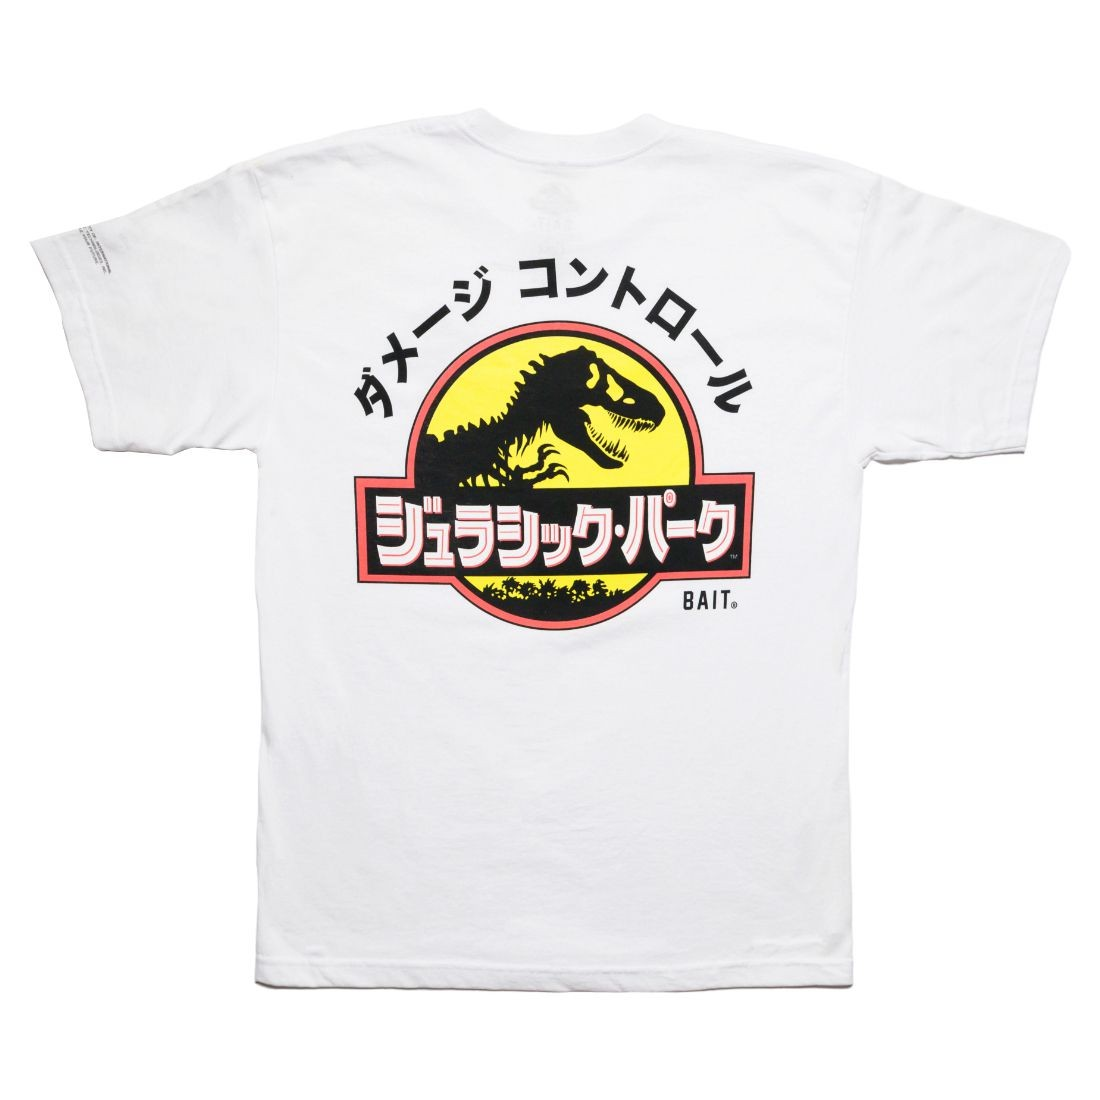 BAIT x Jurassic Park Men Damage Control Tee (white)